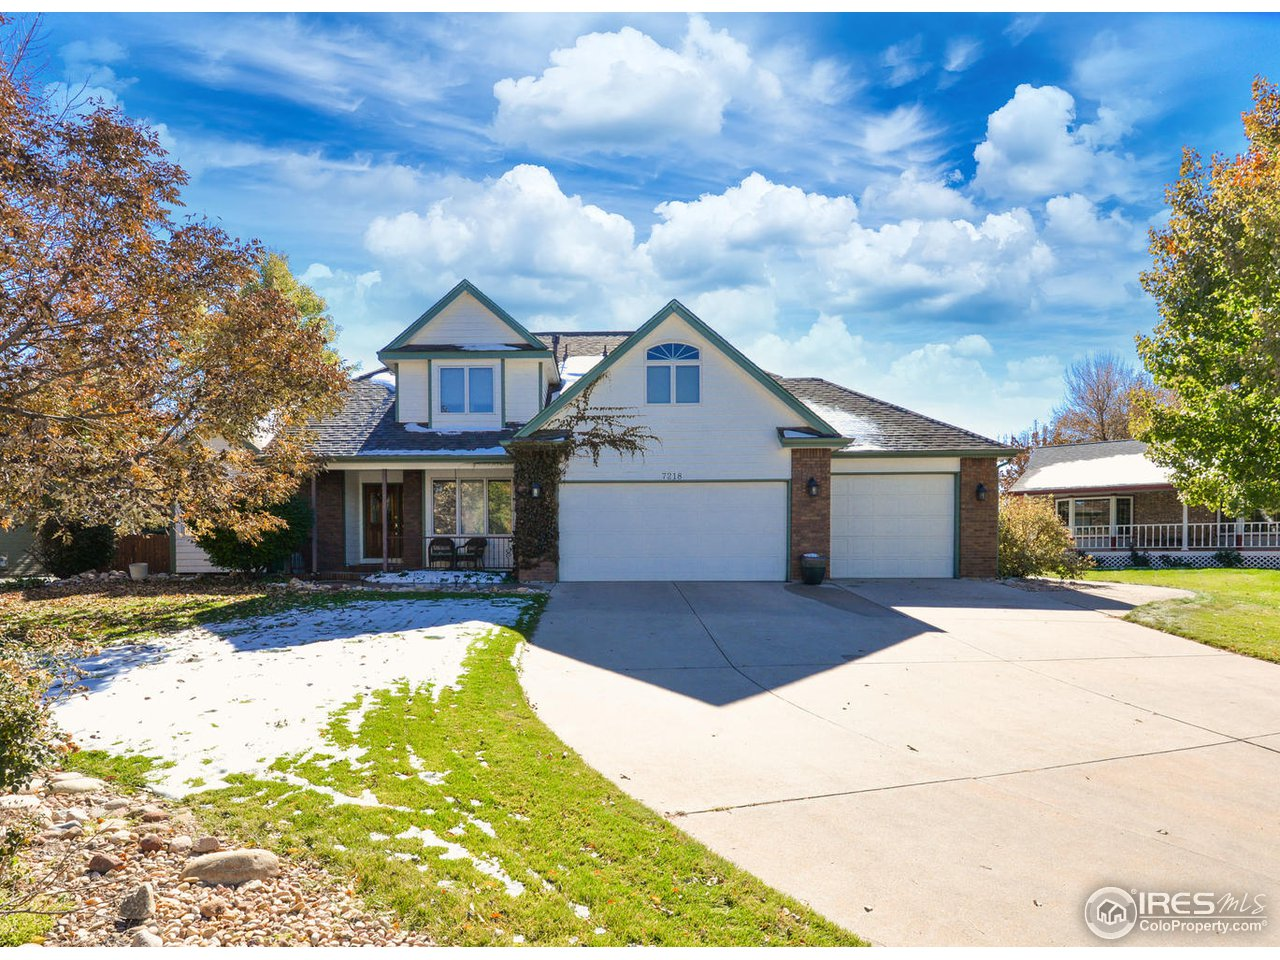 Welcome to this spacious custom built home in Canberra Commons neighborhood!  Home has an over-sized, heated, 3 car garage, 5 bd 4 ba, w/master suite on main level.  Vaulted ceiling in the living room gives it a great open feel with a separate formal dining room that is great for entertaining. Home sits on a large .26 acre lot with a fenced in back yard and a large partially covered patio (hot tub hook up in place) and deck off of upstairs loft.  Too many features to list! Come and check it out!